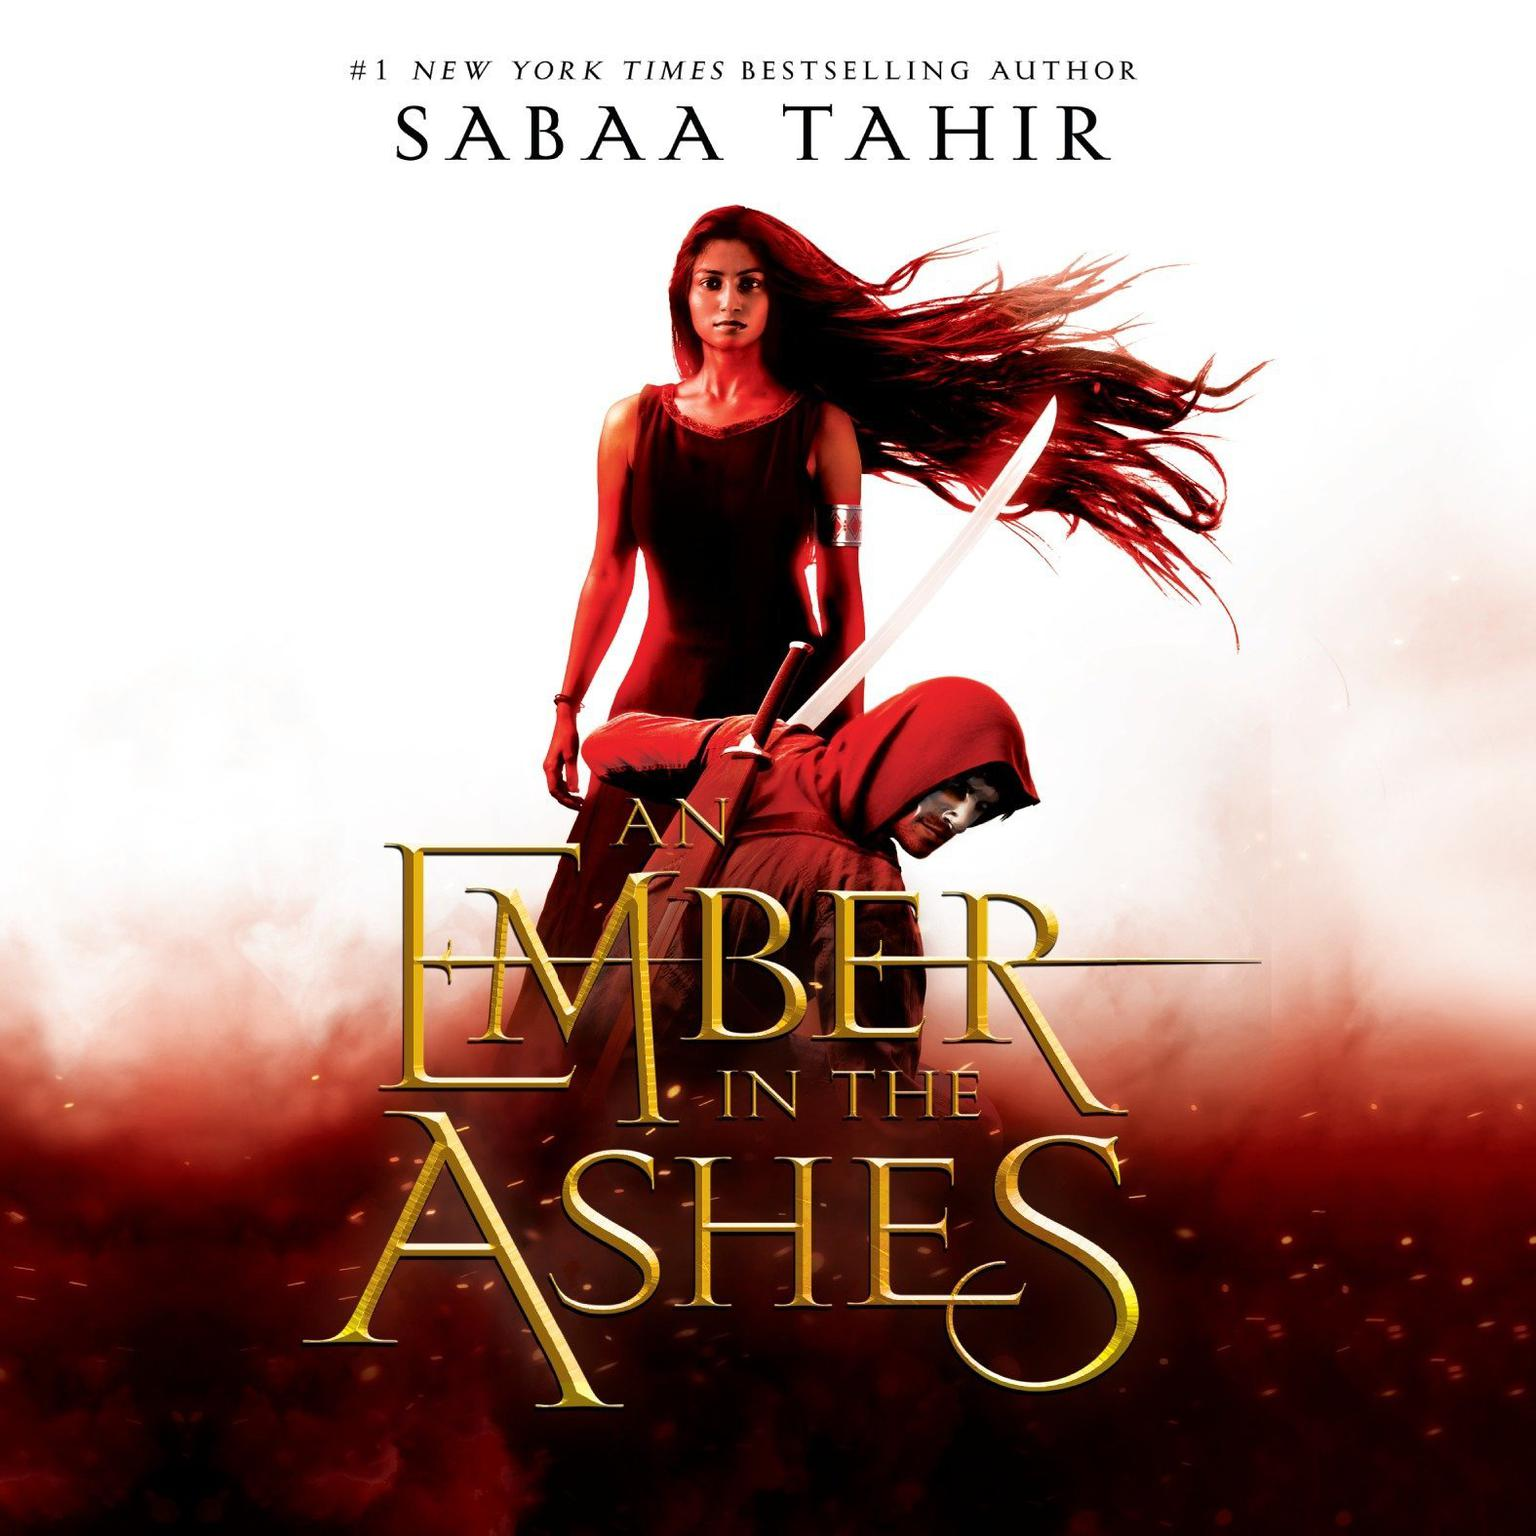 Printable An Ember in the Ashes Audiobook Cover Art